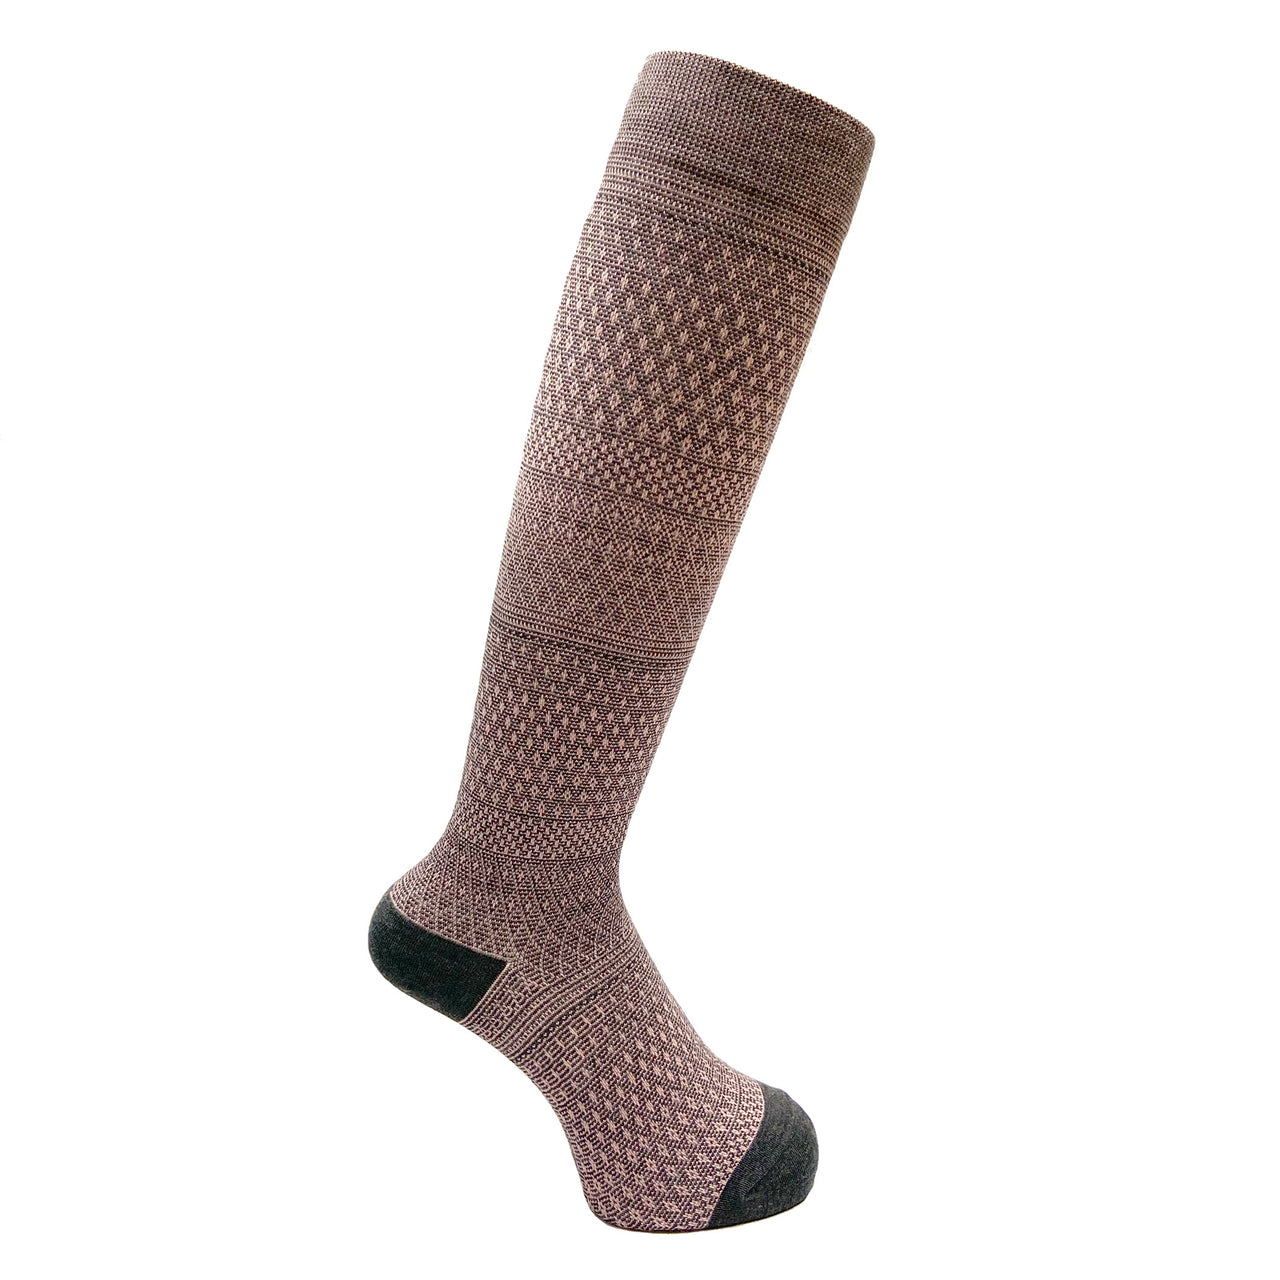 Everyday Knee High Compression Socks| Gradation Border | Gray - CHERRYSTONE by MARKET TO JAPAN LLC